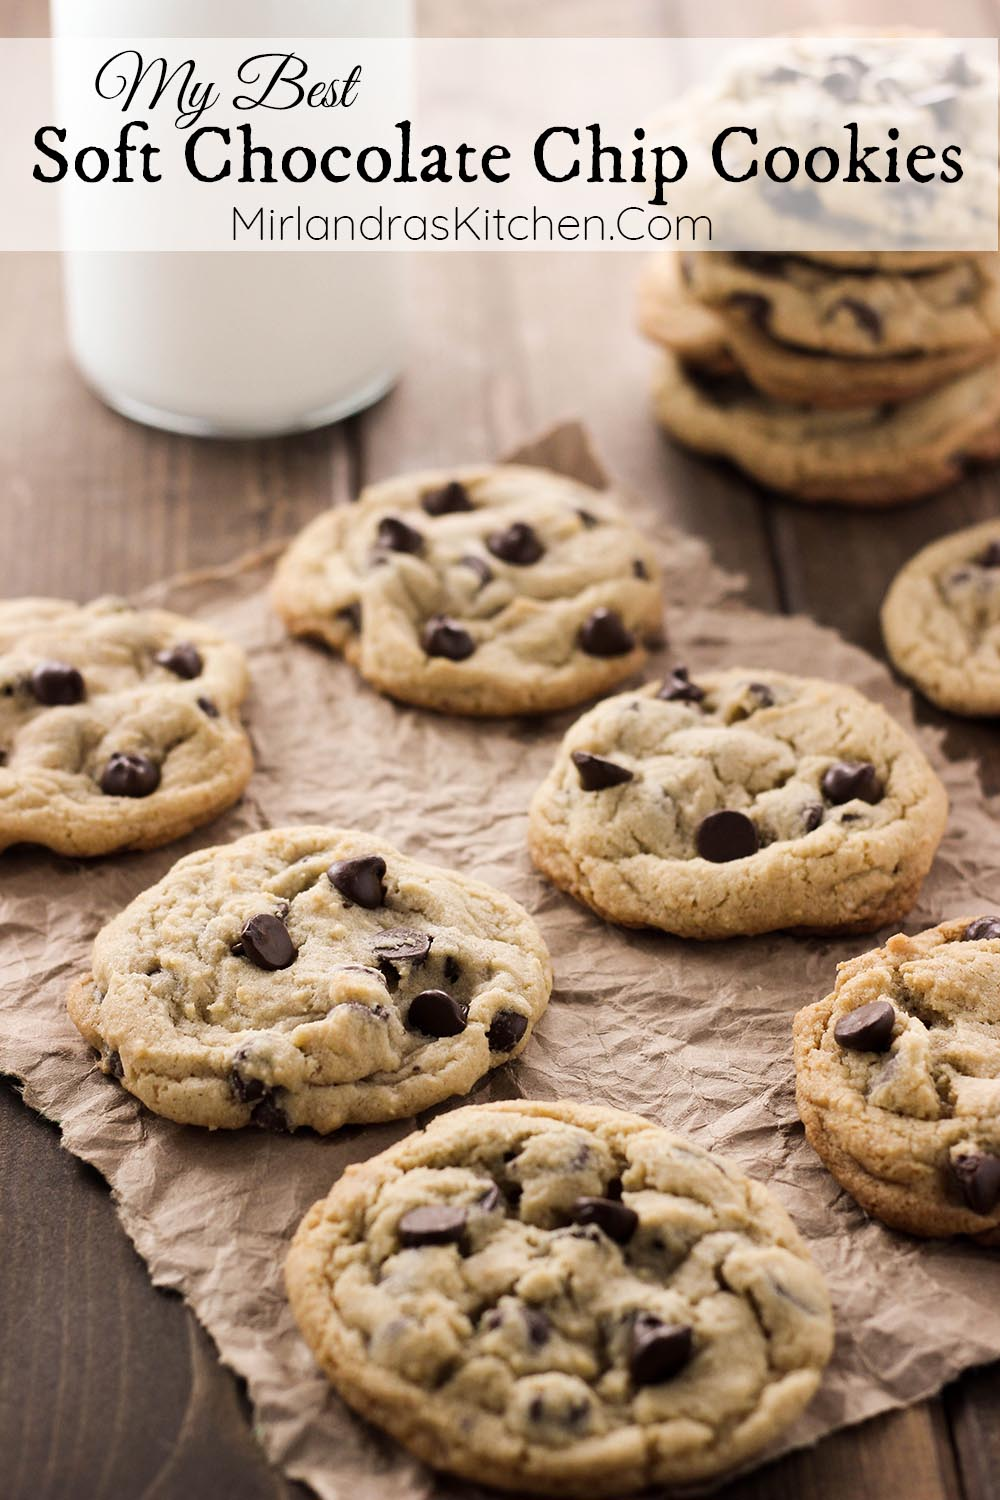 Squishy Chocolate Chip Cookies : How To Make Chocolate Chip Cookies Soft And Fluffy Autos Post